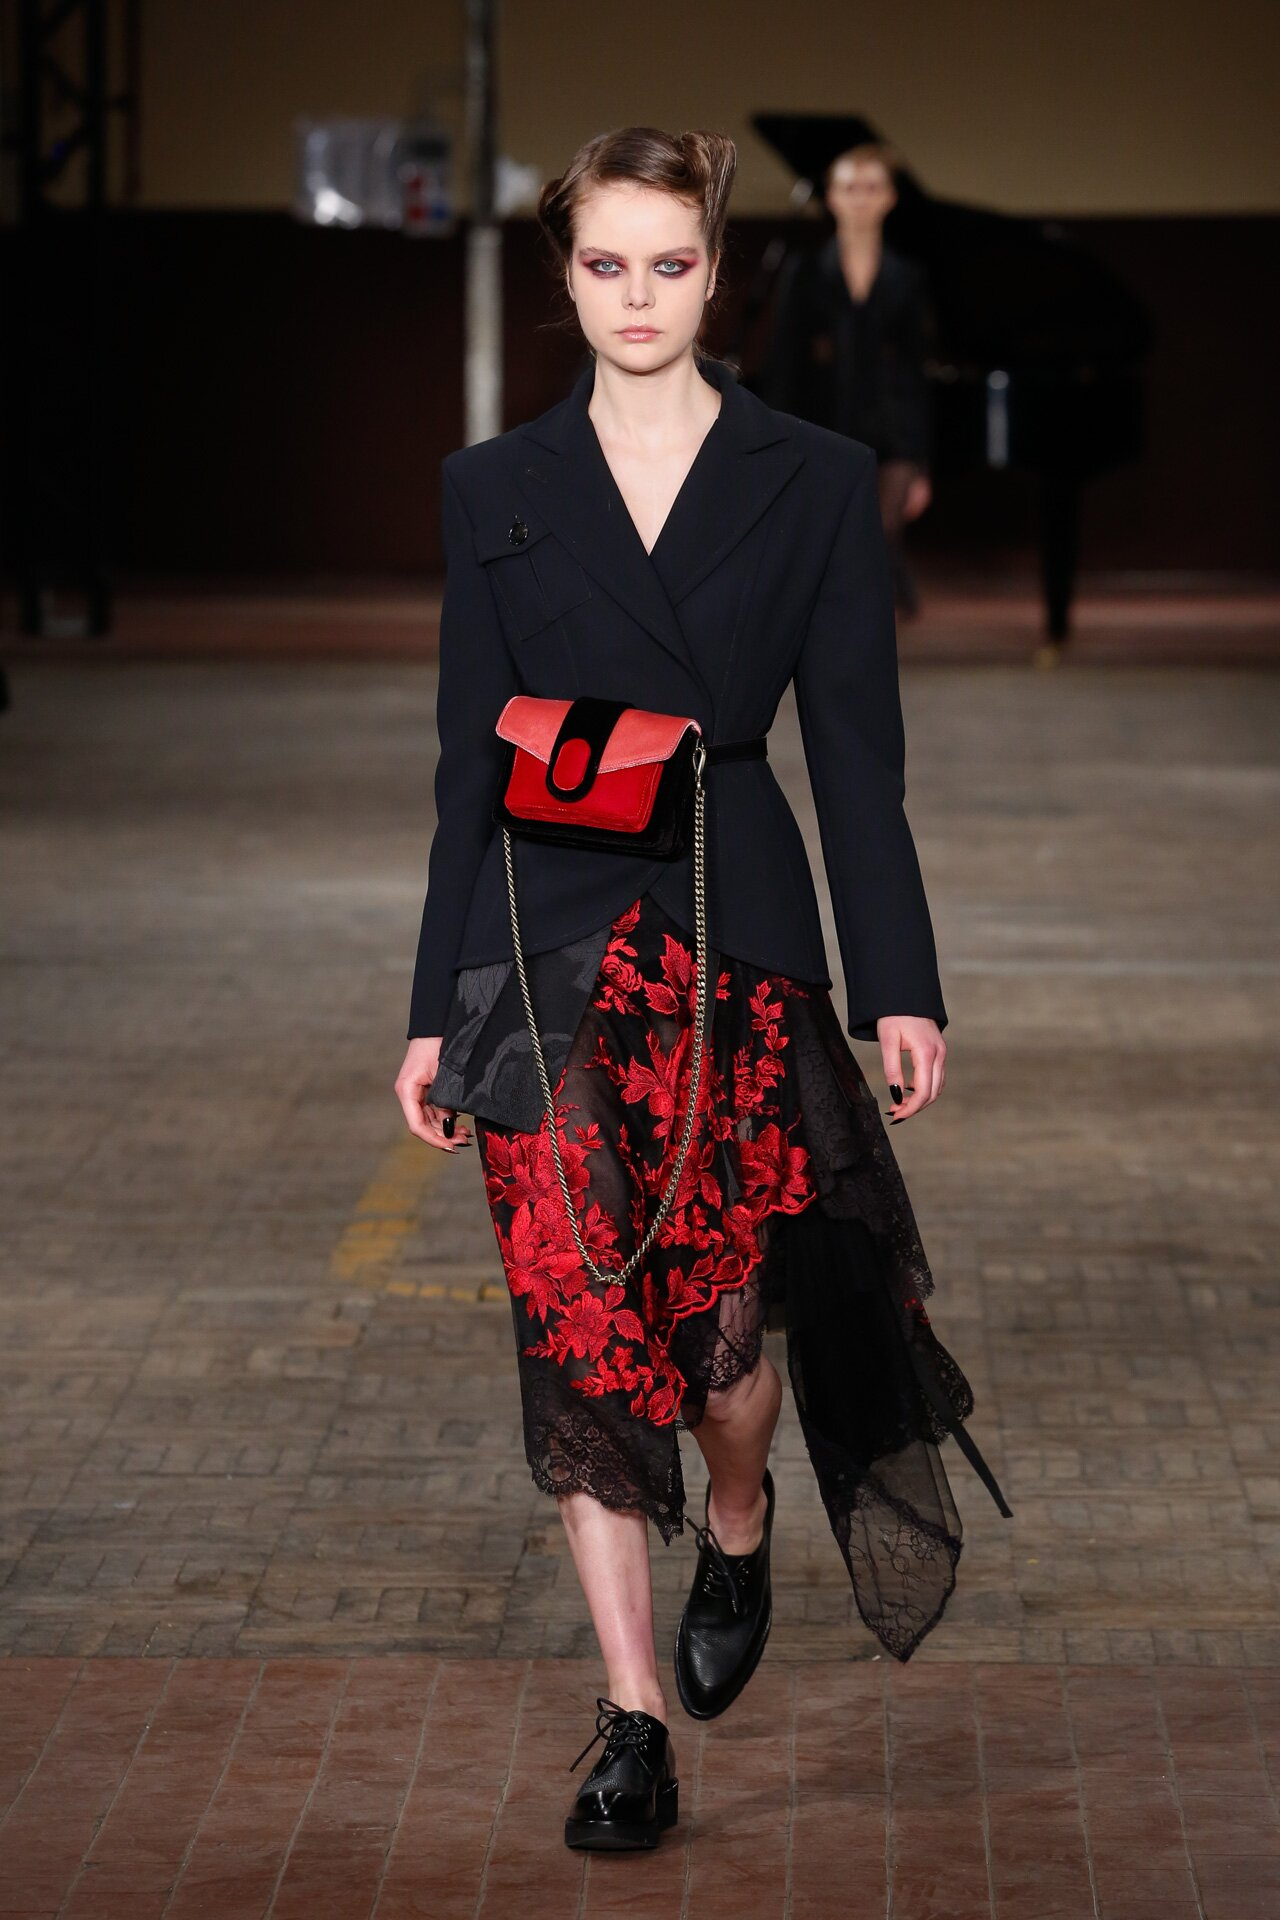 Antonio Marras Fall Winter 2018-19 Fashion Show Look 8